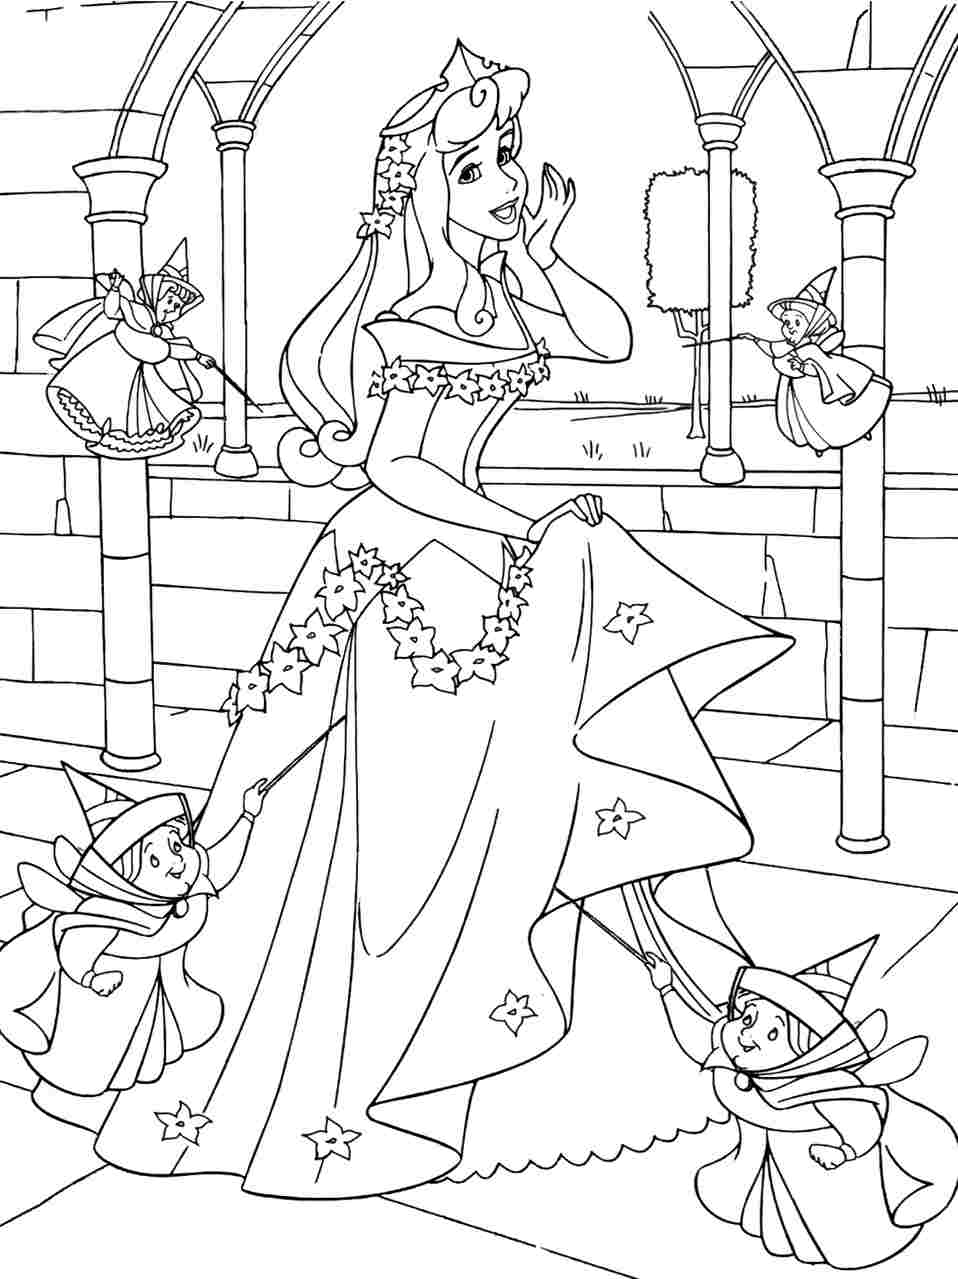 color in pages free printable sleeping beauty coloring pages for kids in pages color